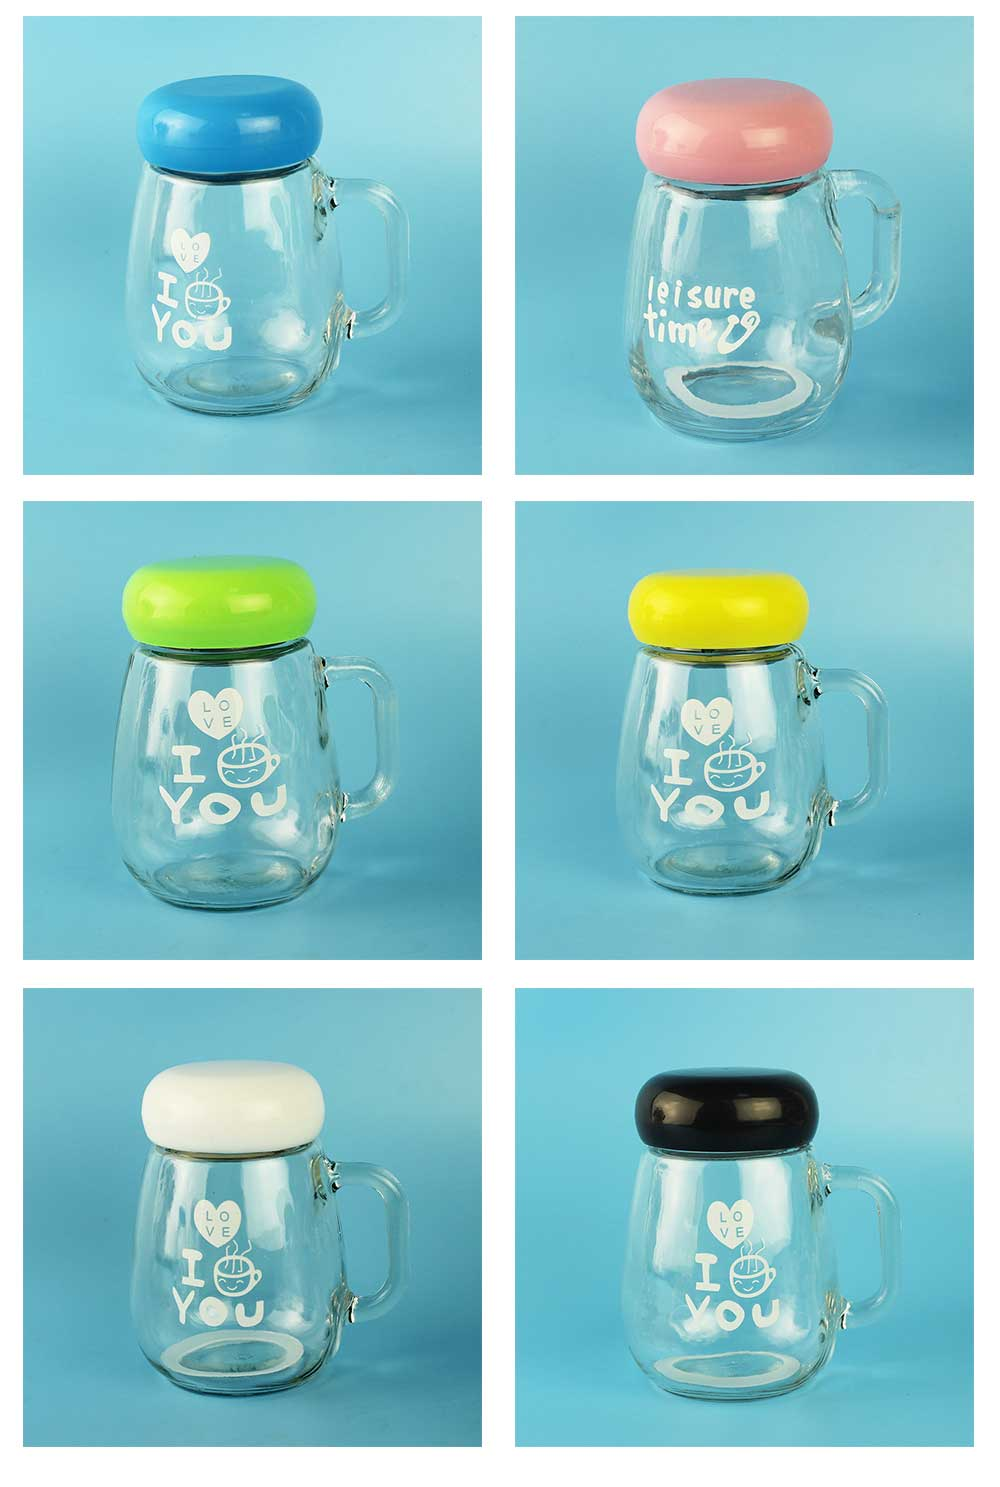 Glass Cup with Grip Handle, Cute Design Ideal for Students, Women,Girls, School Office Home Essential Glass Mug with Lid 5